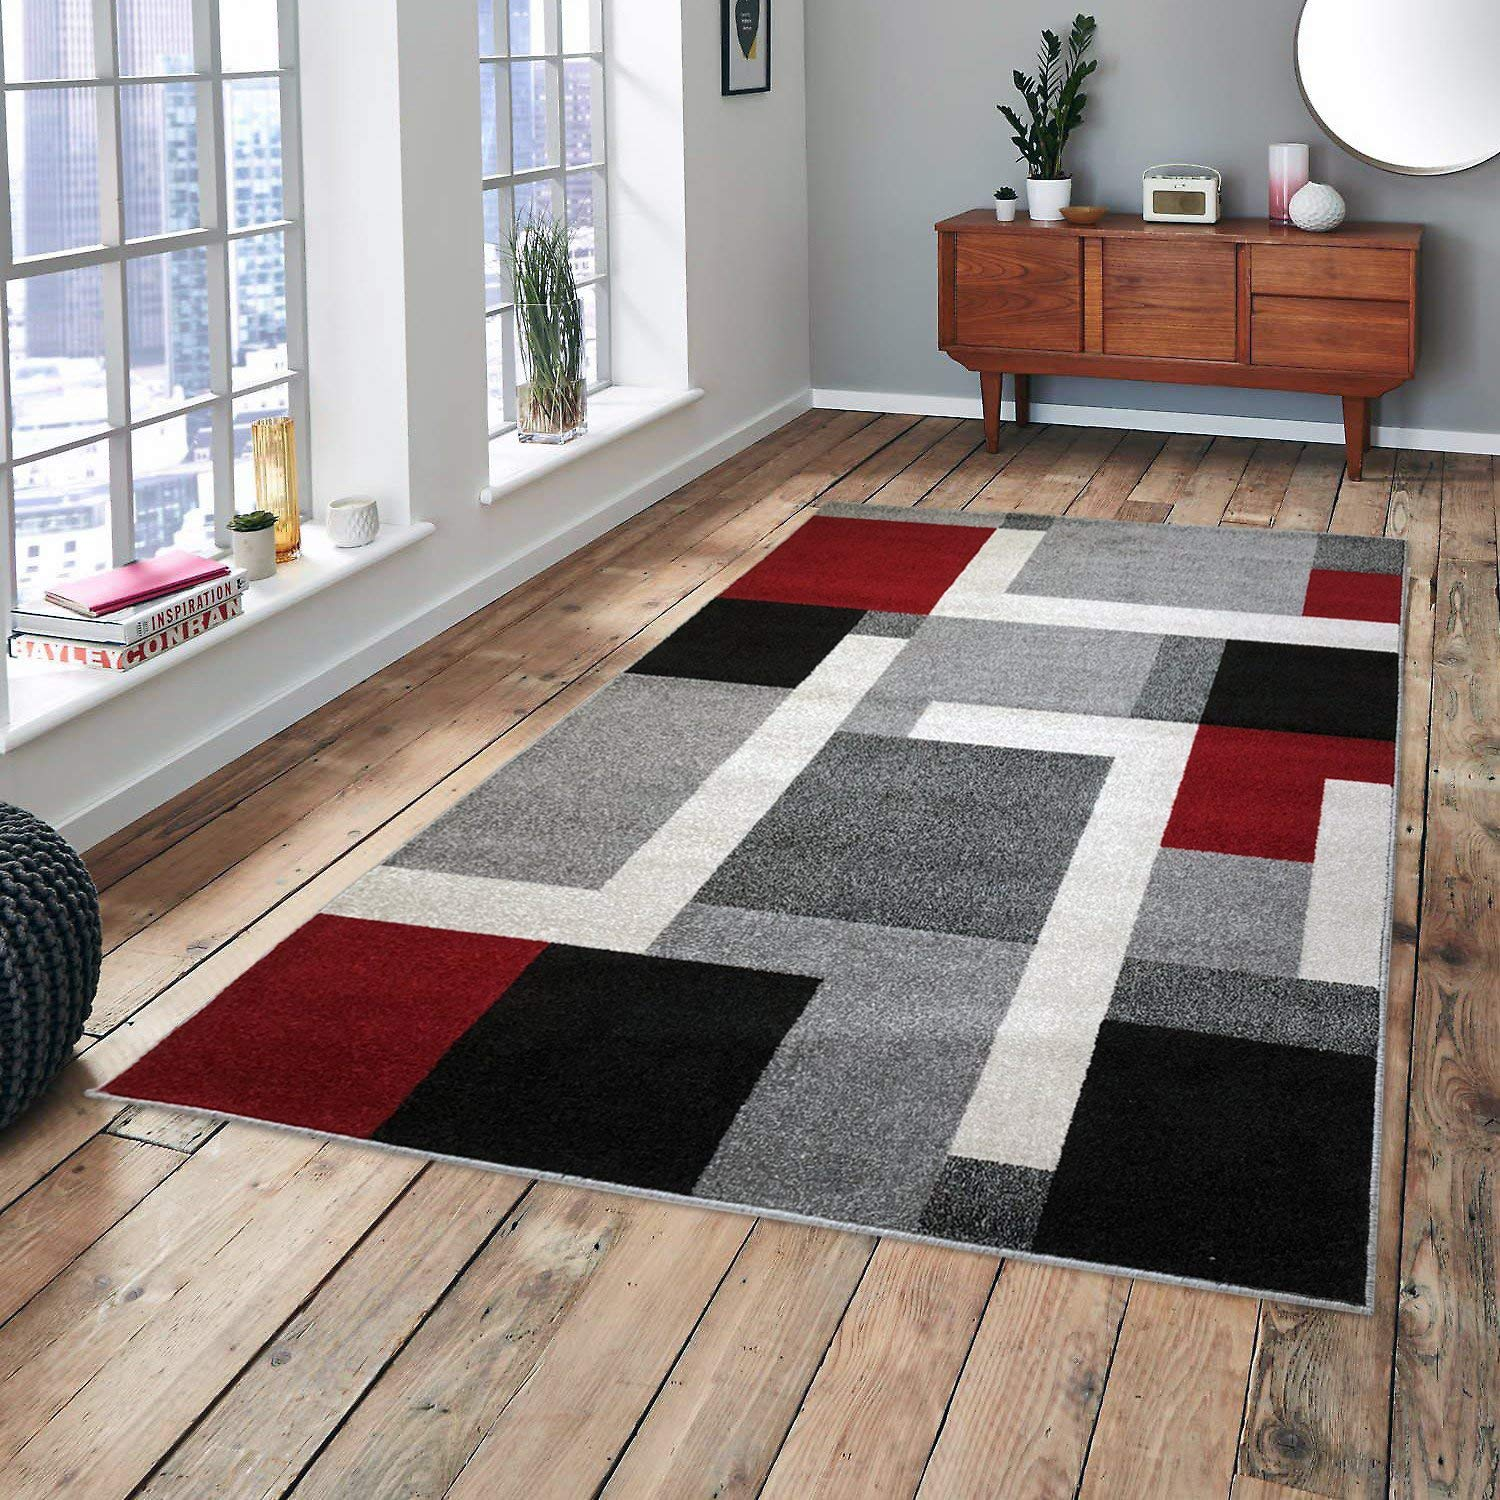 Cosi Collection Easy Clean Stain and Fade Resistant Modern Integra Area Rug for Bedroom Kitchen Dining Living Room, Modern Geometric Space Design (Size 5' x 7' Feet)